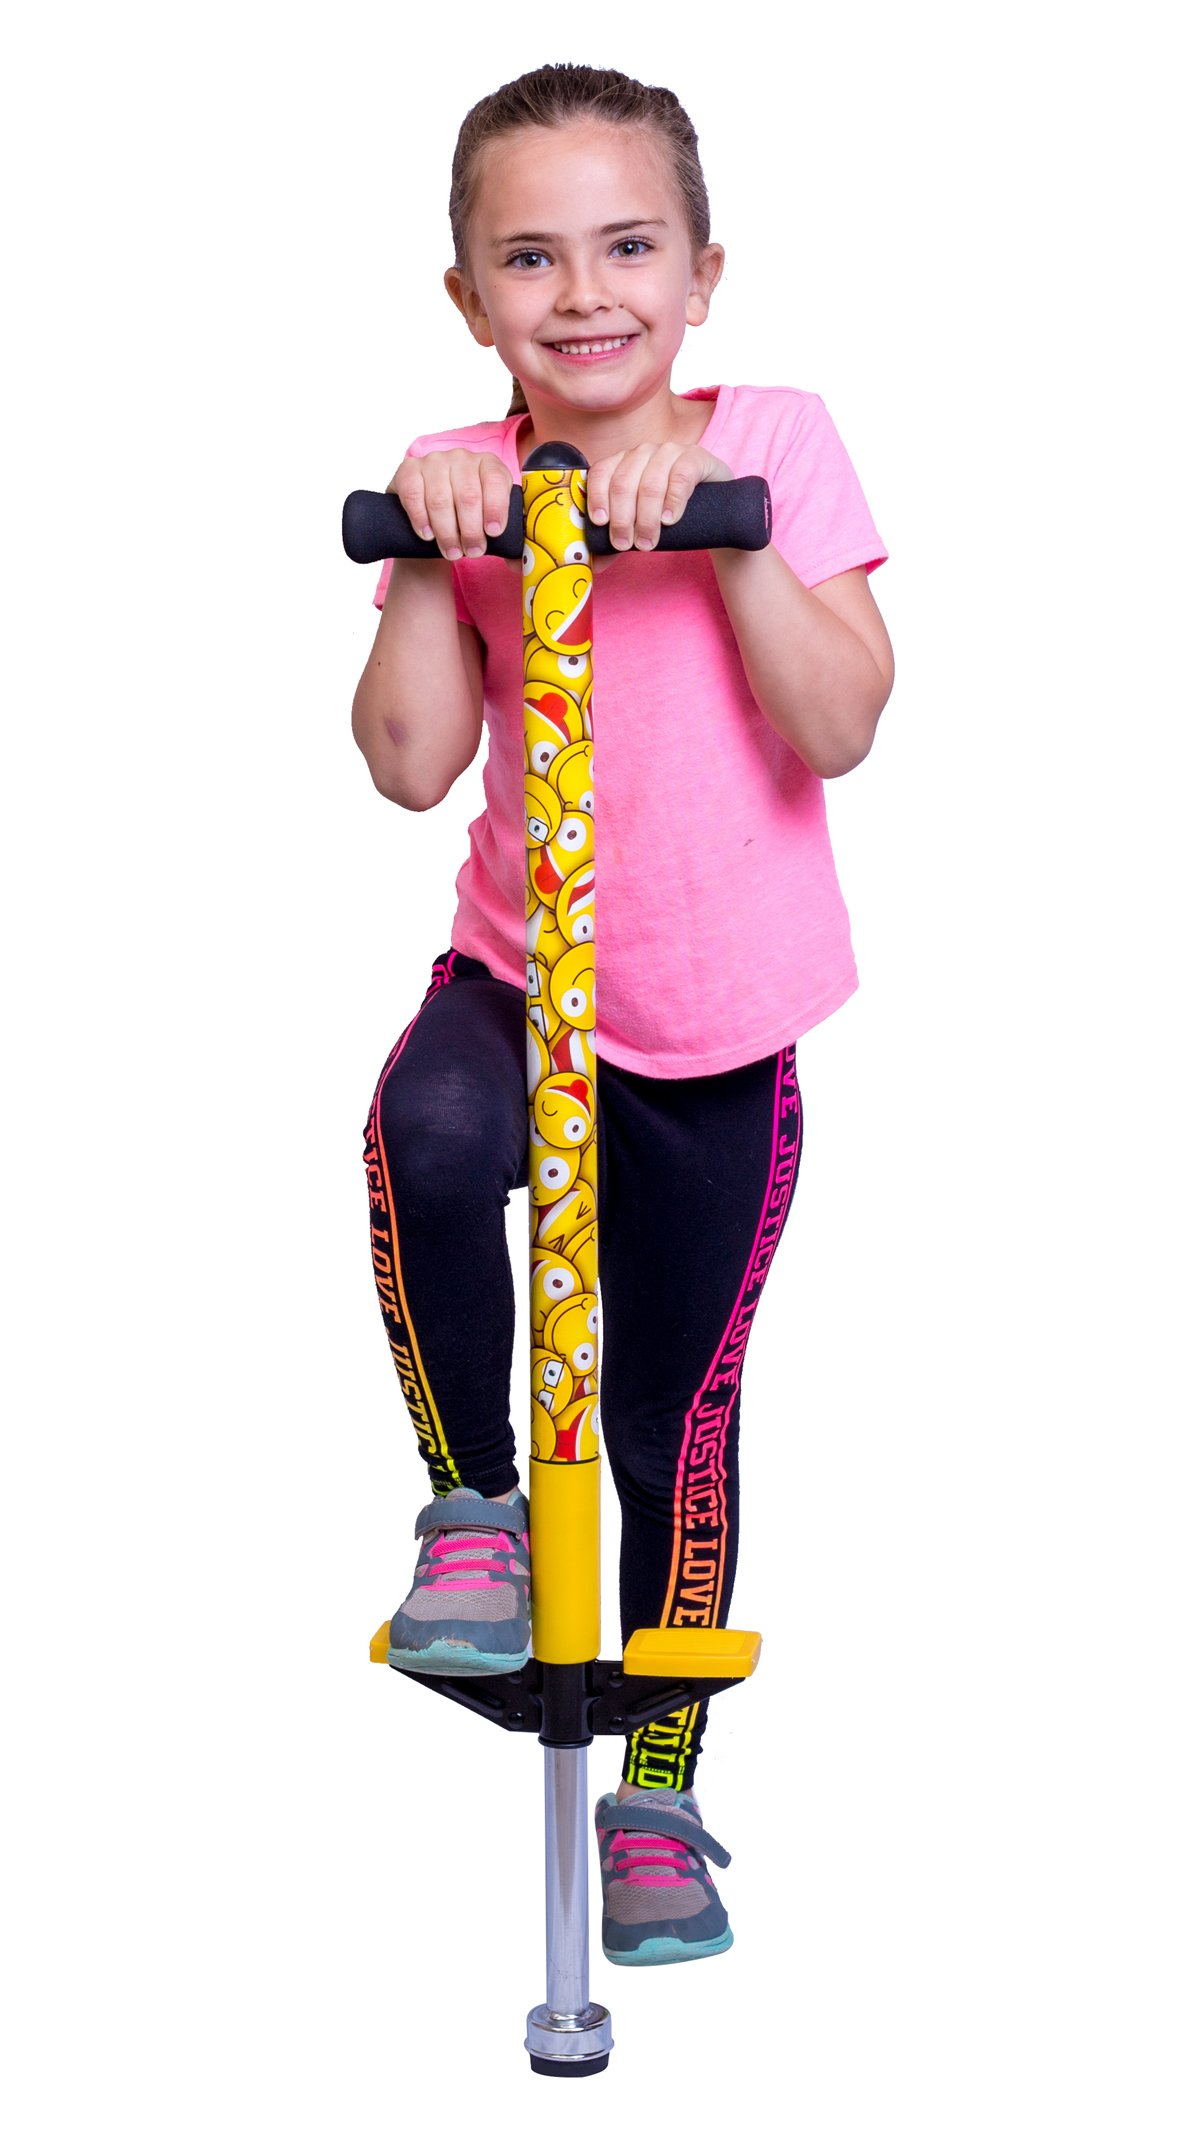 PLENY Emoji Pogo Stick for Kids 5,6,7,8,9,10 Years Old - Weight 50 to 110 Lbs by PLENY